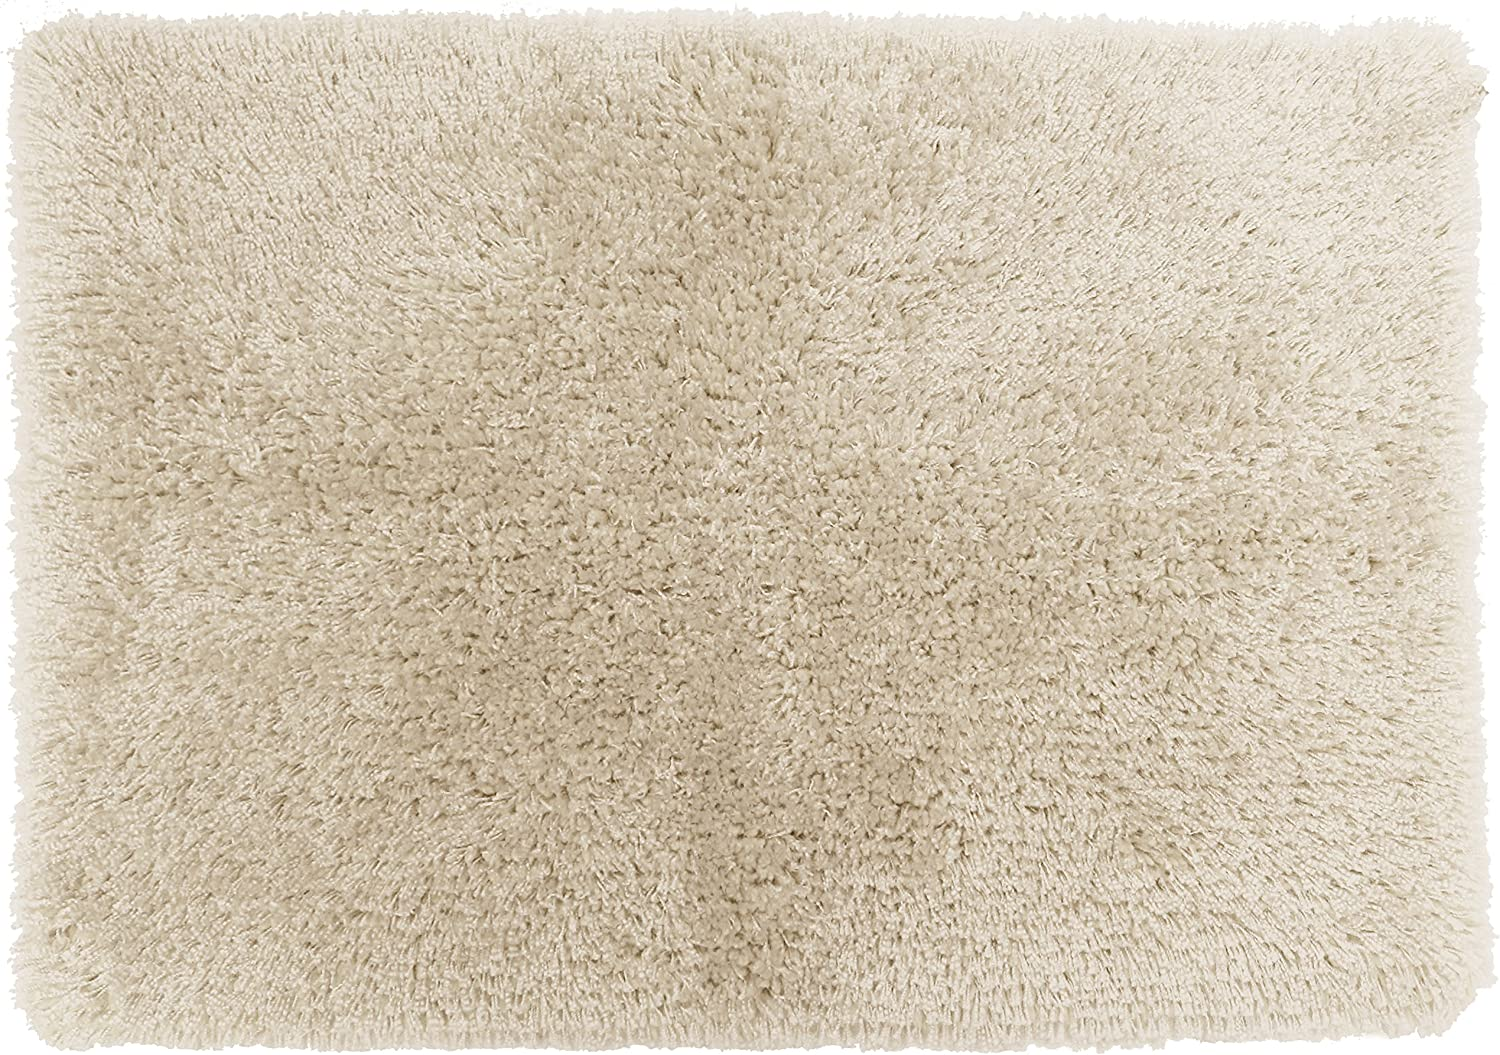 New products, world's highest quality popular! Casale Home 847431000571 New Juliette 2 Bath 20x Tone Rug Nylon Discount mail order